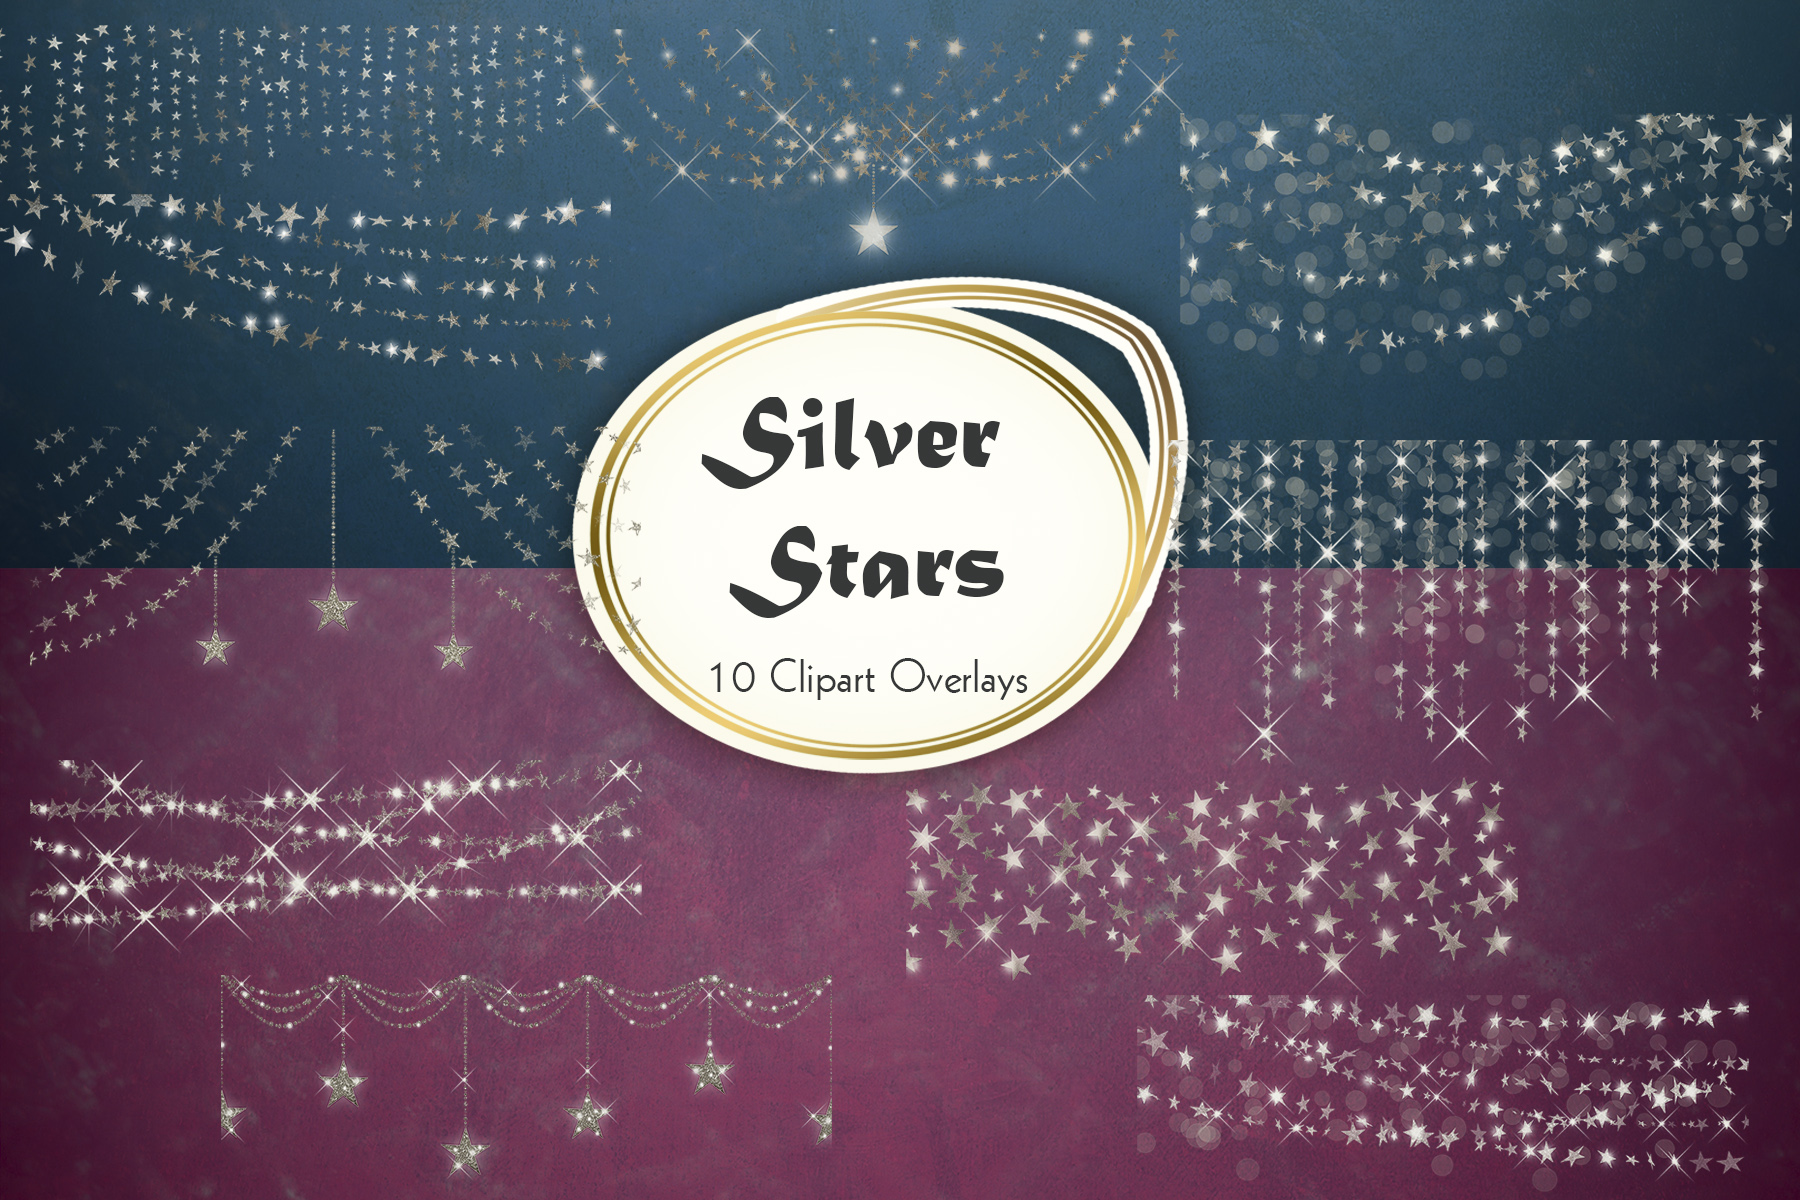 Download Free Silver Stars Light Overlay Graphic By Tara Artisan Creative for Cricut Explore, Silhouette and other cutting machines.